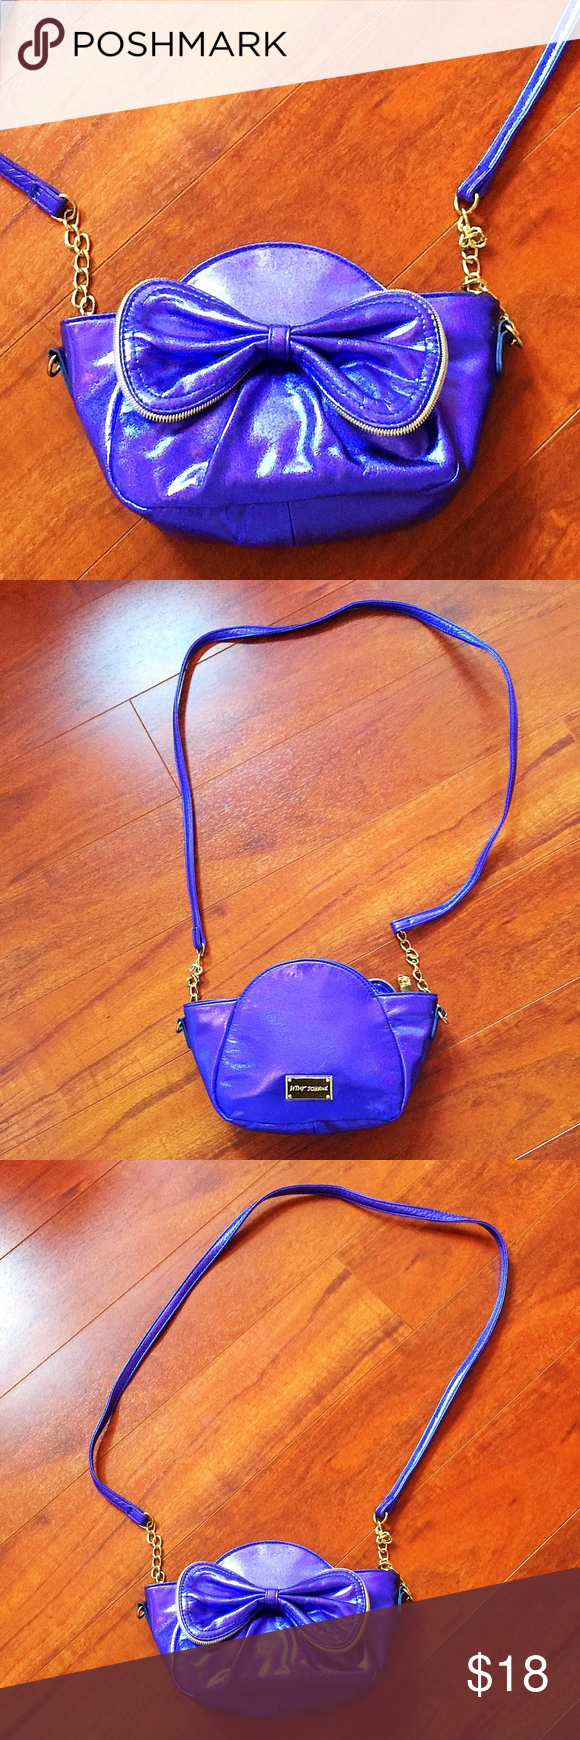 Betsey Johnson Zipper Bow Crossbody Gorgeous purple cross body bag by Betsey Johnson with bow detail. This item ships from Florida and can only be bundled with other items shipping from Florida in my closet. (Some are out of state) please check before purchasing a bundle! TRADES OUTSIDE TRANSACTIONS ❤️OFFERS WELCOME❤️ Betsey Johnson Bags Crossbody Bags